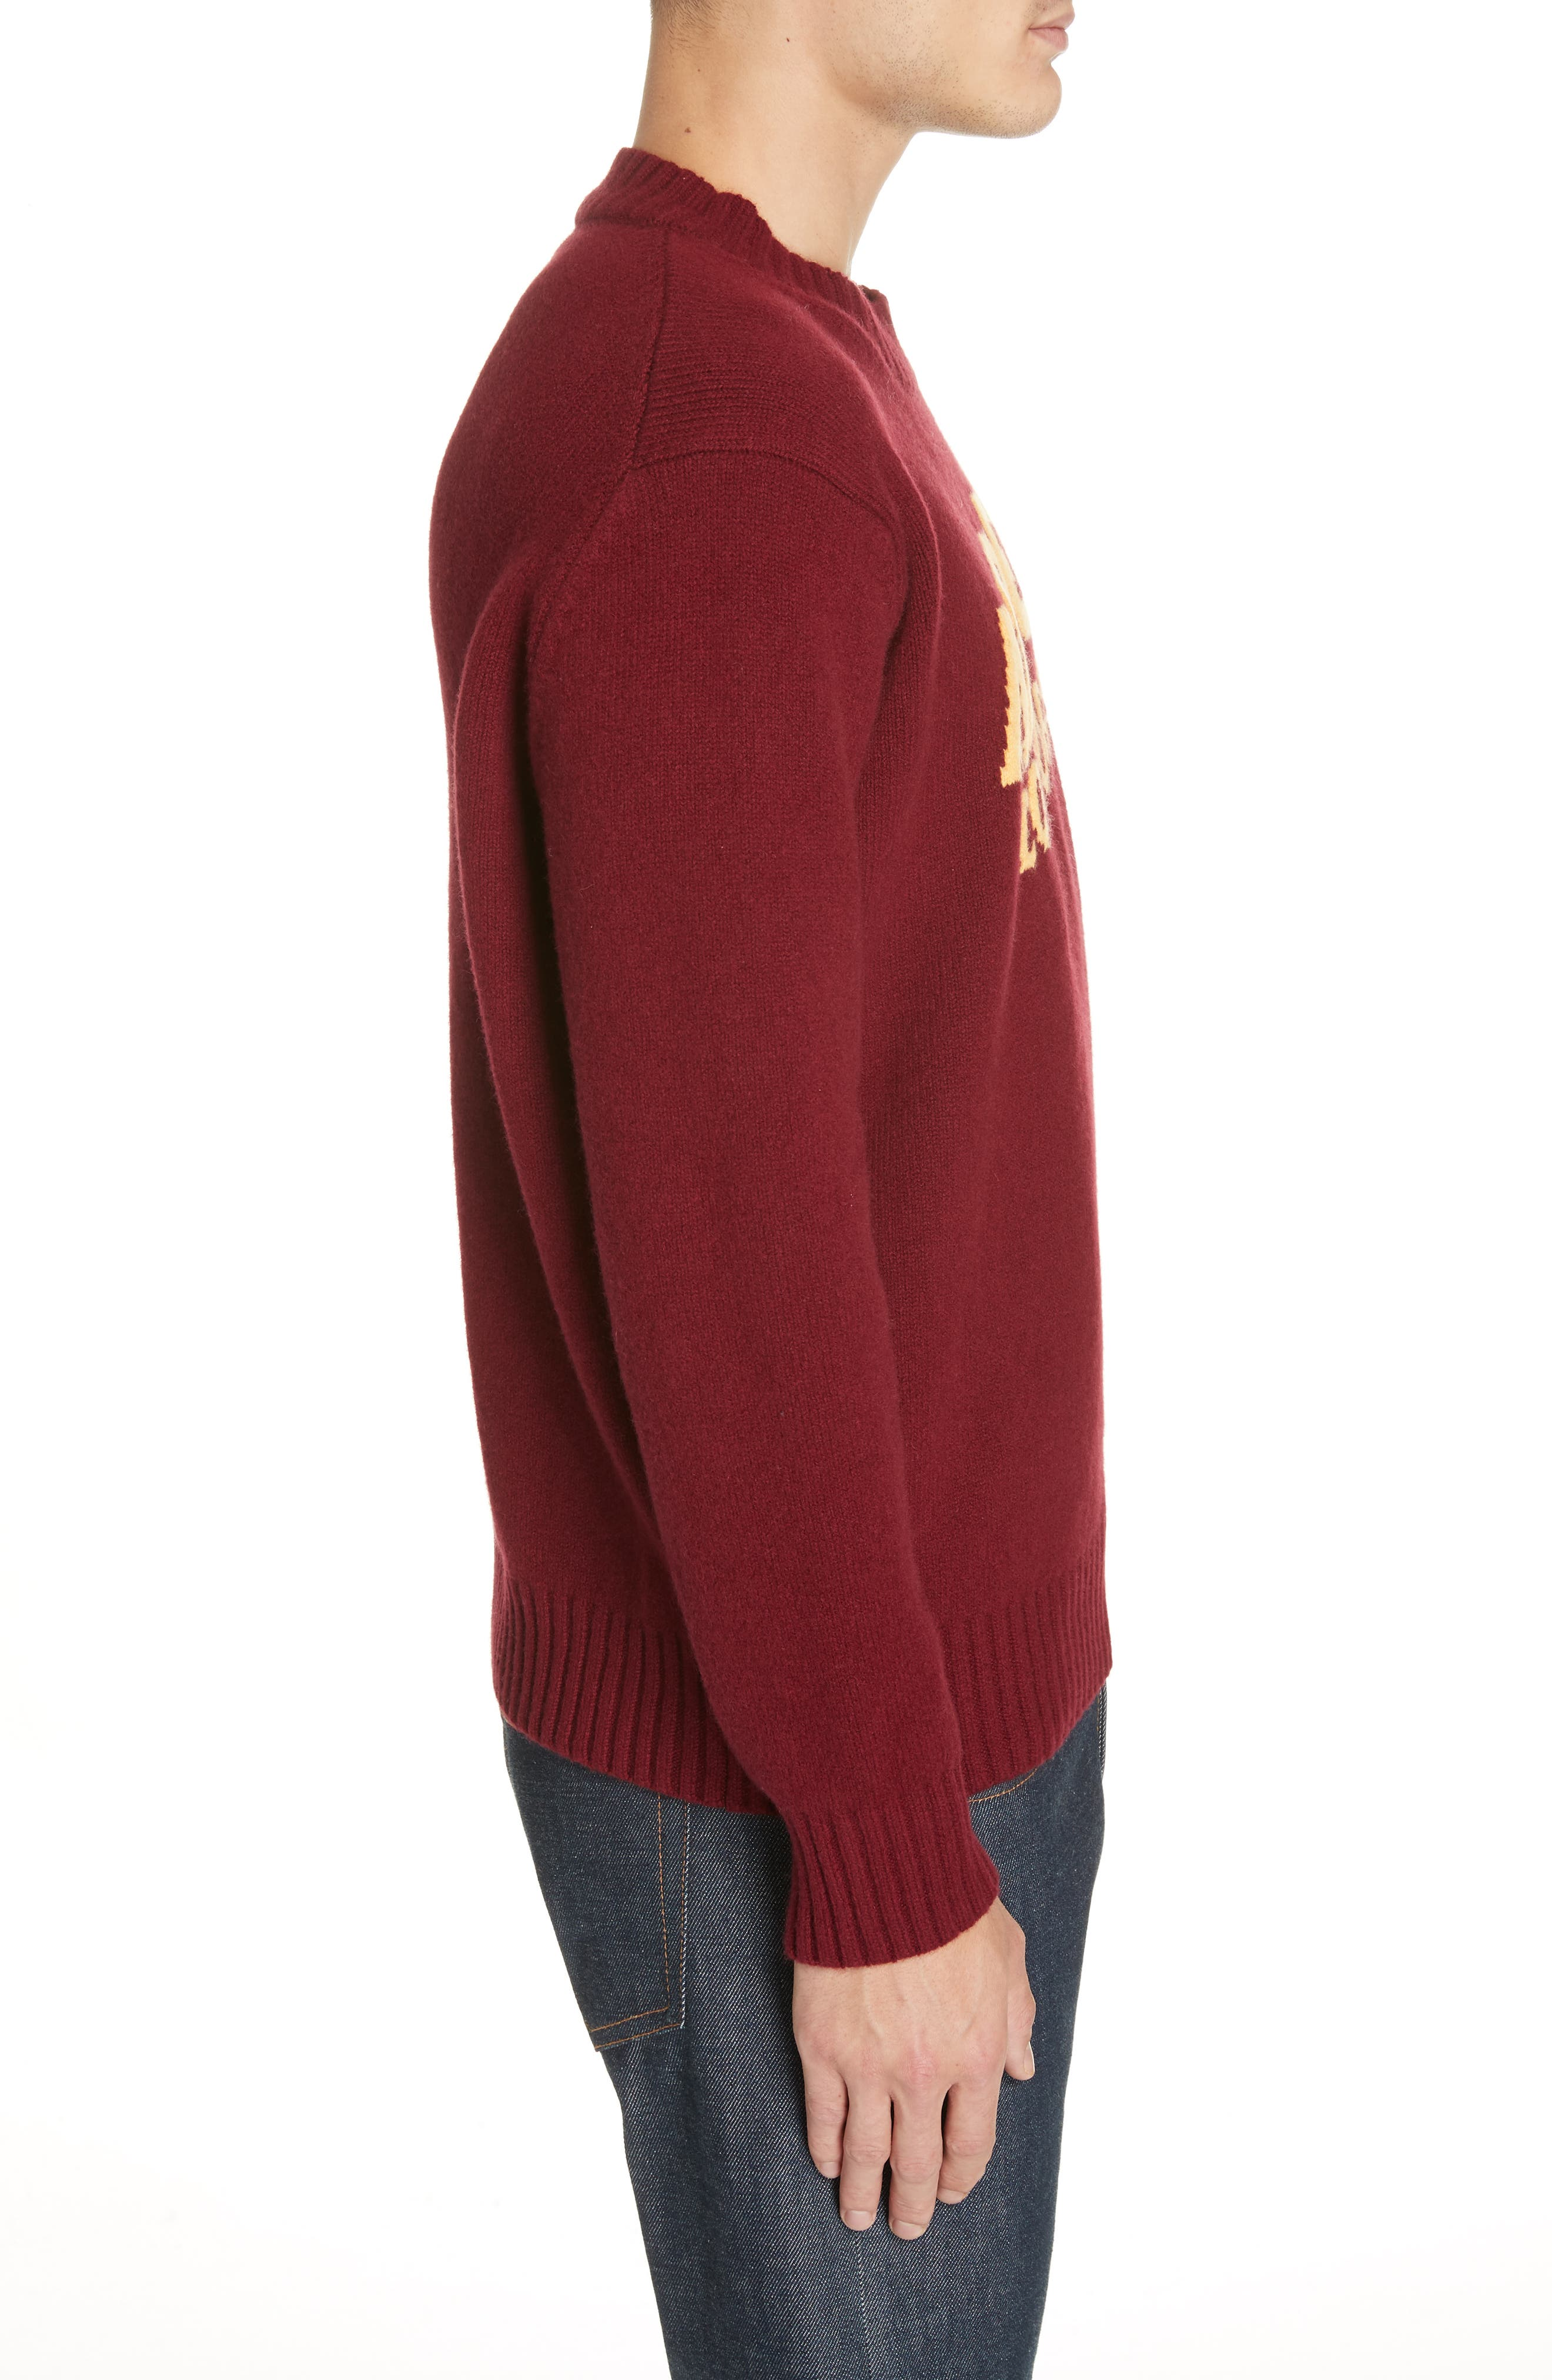 MONCLER, Maglione Cashmere Sweater, Alternate thumbnail 3, color, 601